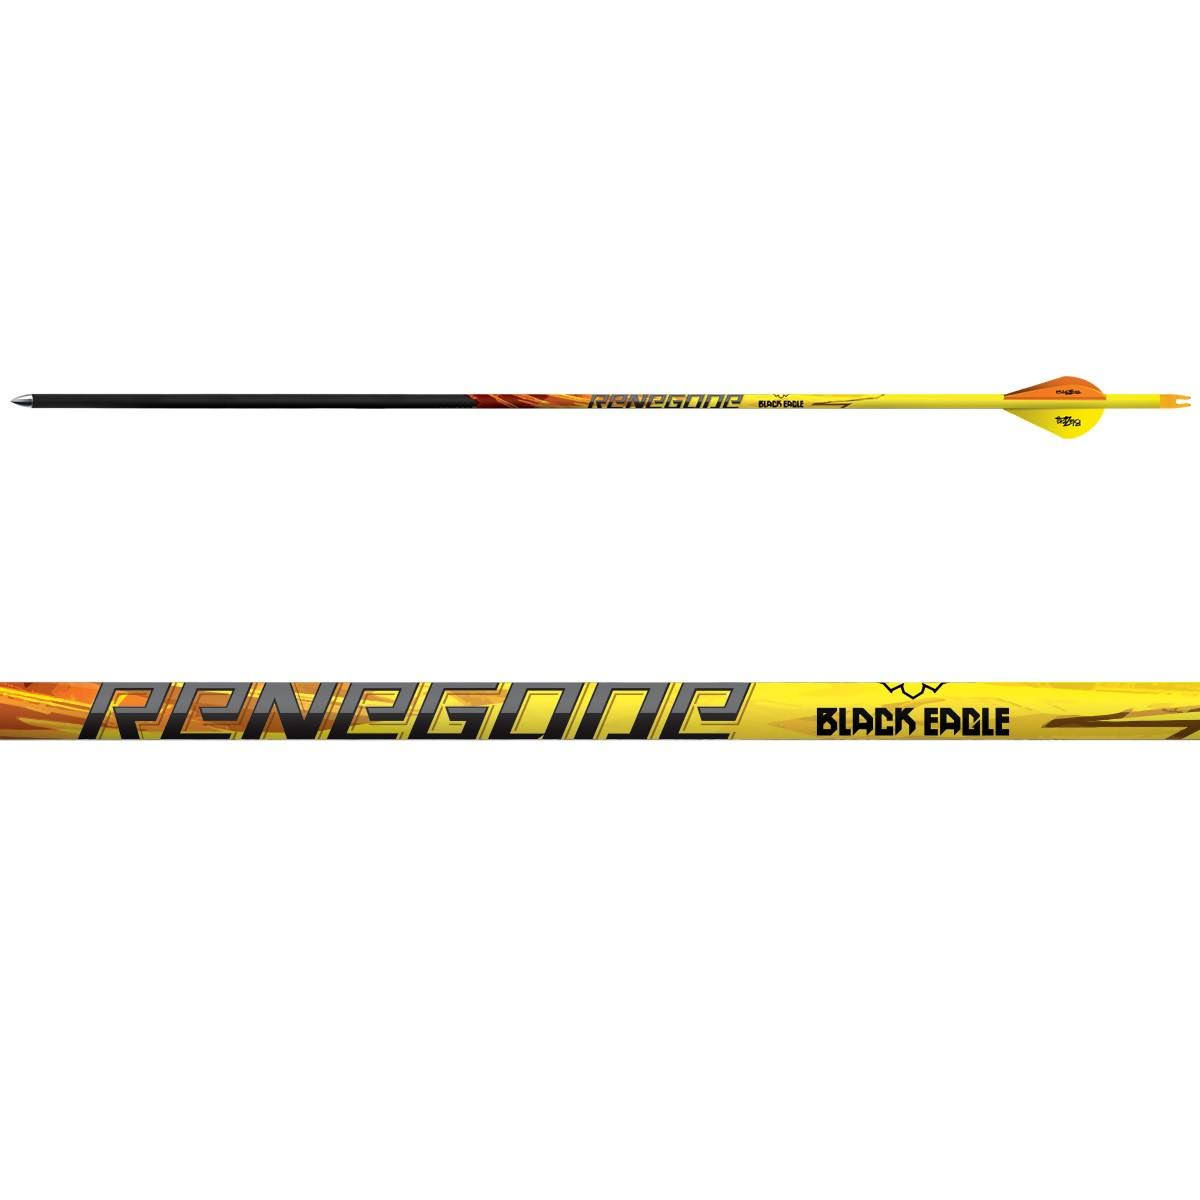 "Black Eagle Renegade Fletched Arrows - .005"", 6pk"